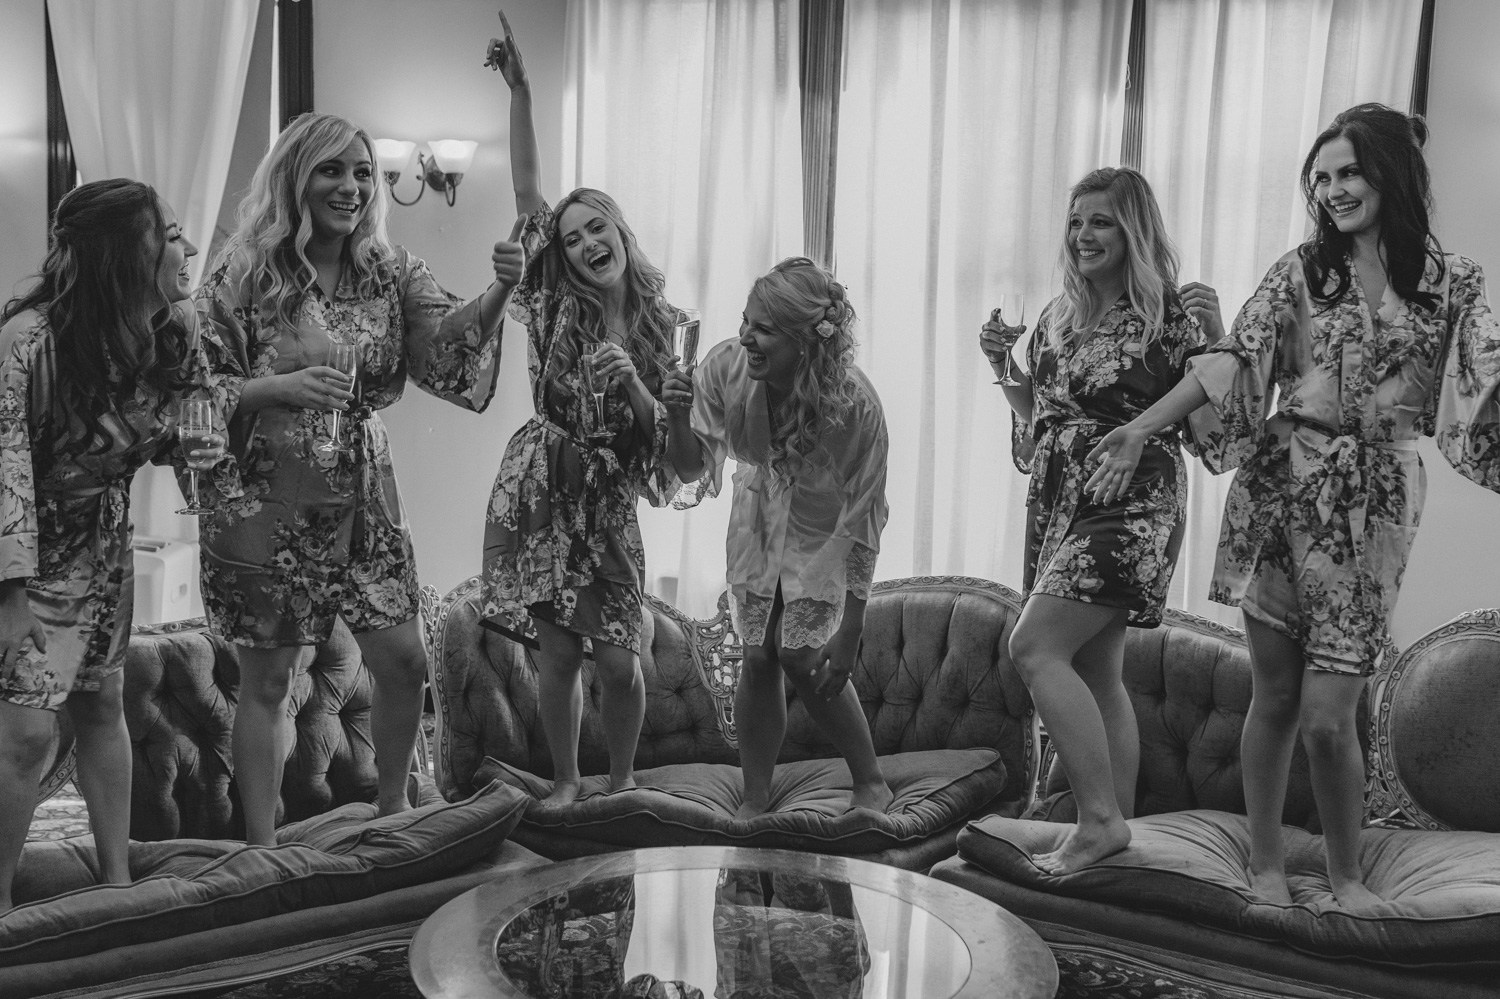 Wedgewood Sequoia Mansion wedding bridesmaids on the couch photo